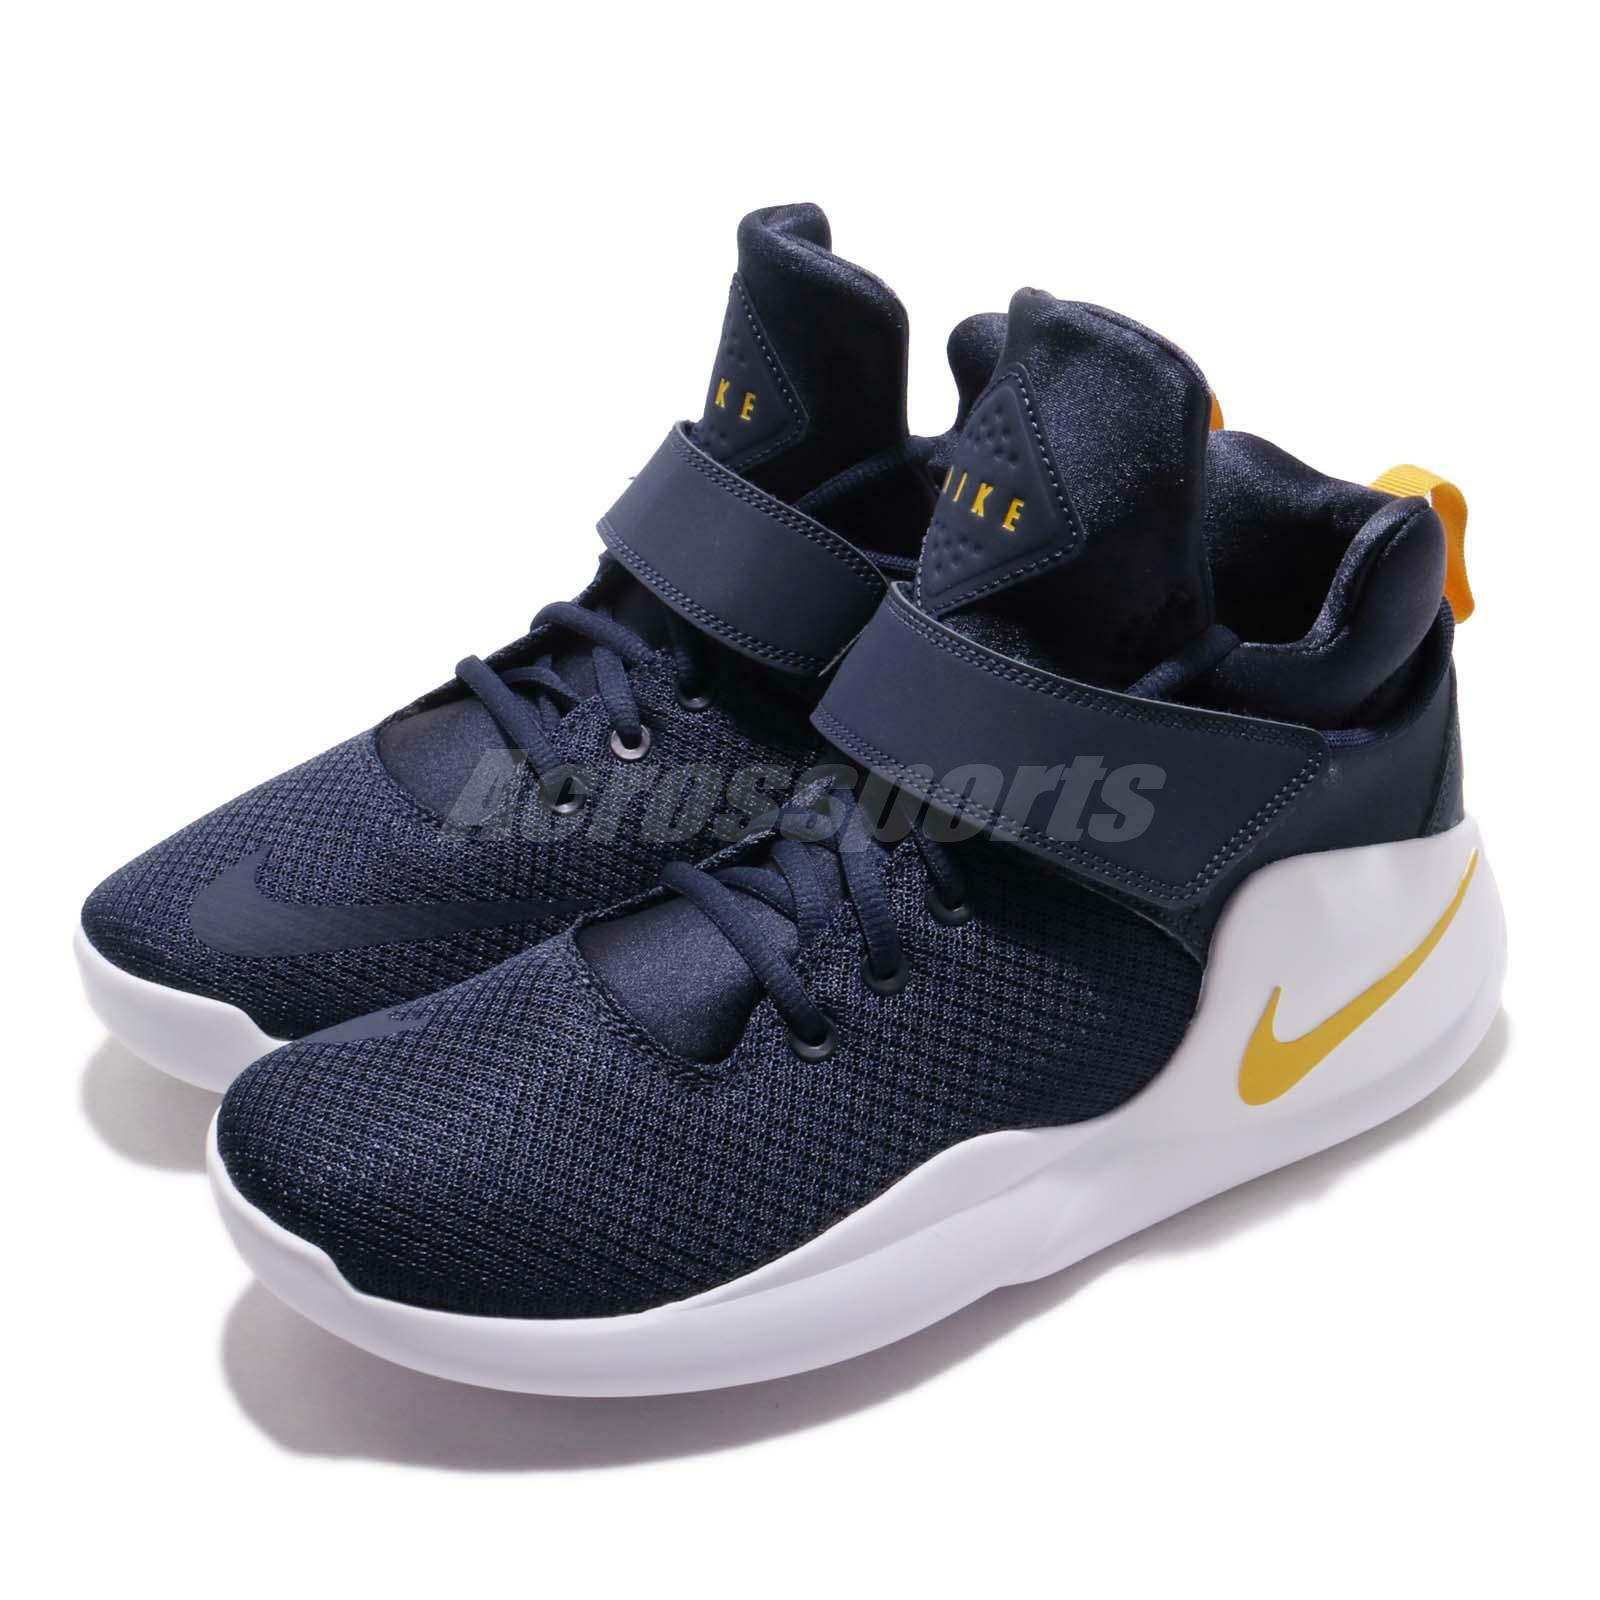 Nike Kwazi Midnight Navy Yellow White Men Basketball shoes Sneakers 844839-401